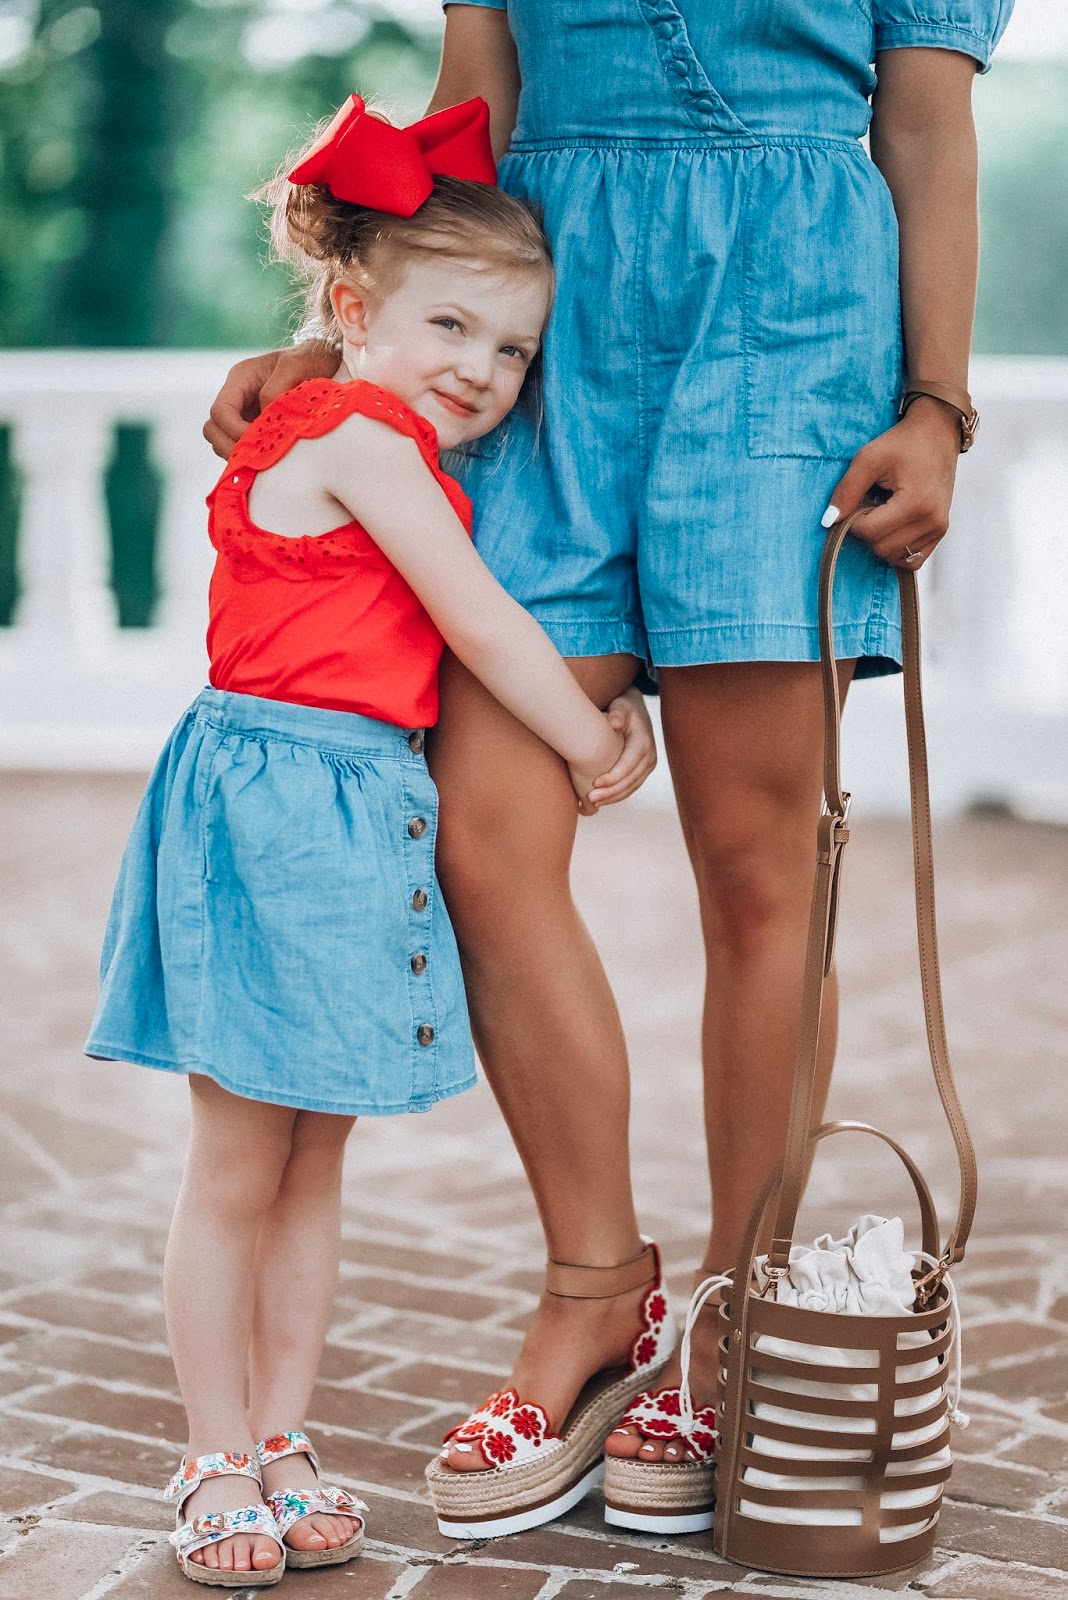 The Best Way to Wear Chambray: Mommy & Me Chambray Style with Red Accessories - Something Delightful Blog